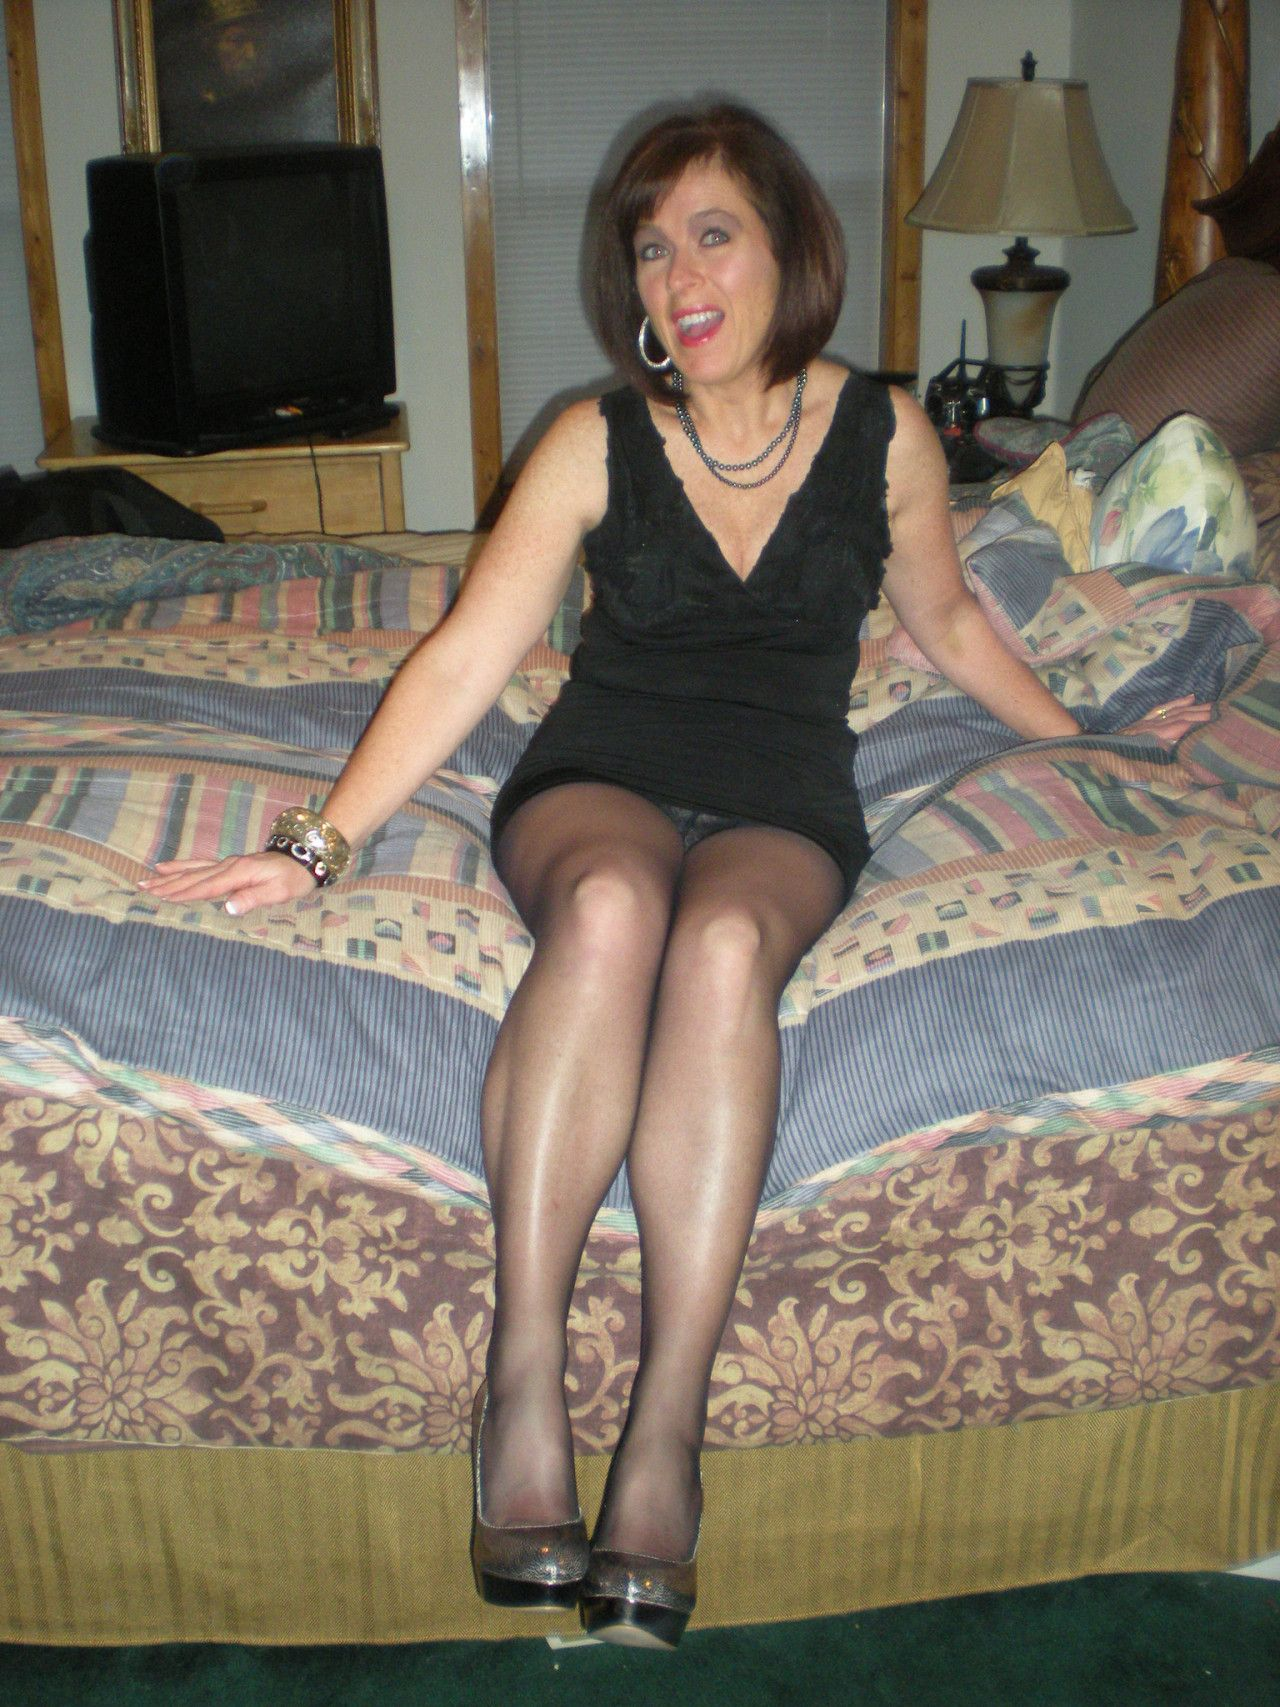 gorgeous milf in black pantyhose and short tight dress. woman in